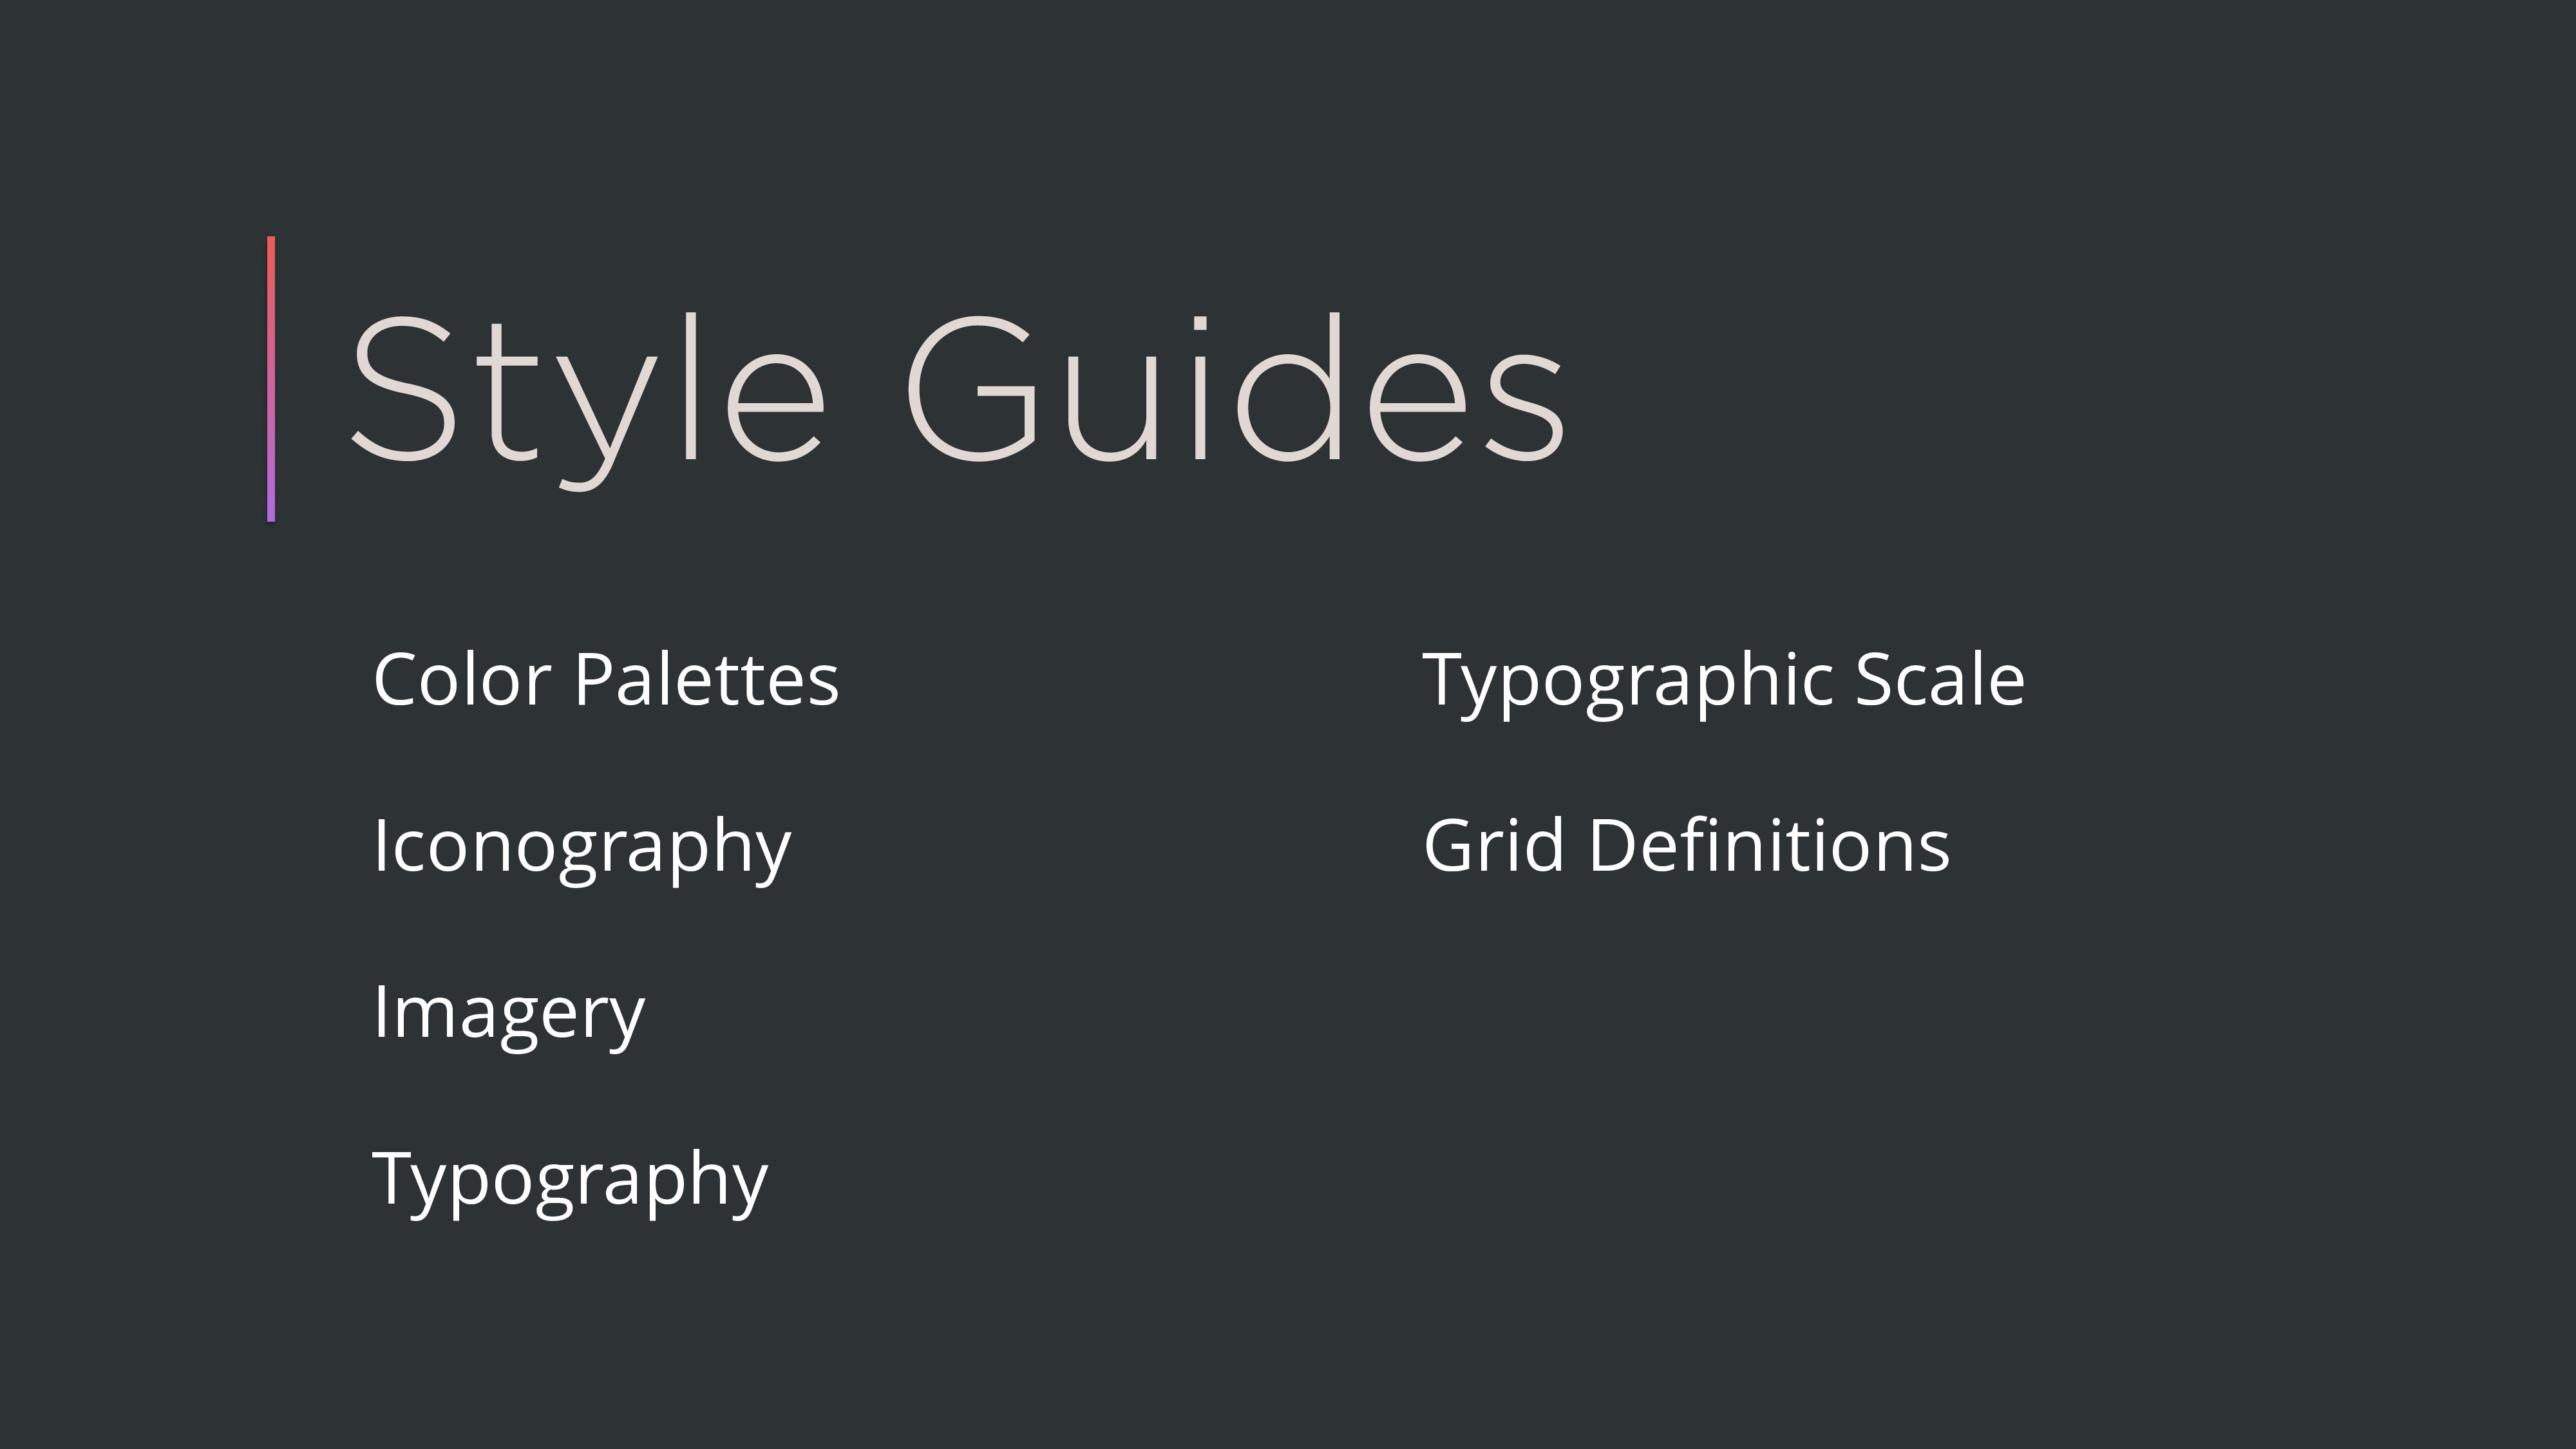 Style Guides Color Palettes Iconography Imagery...